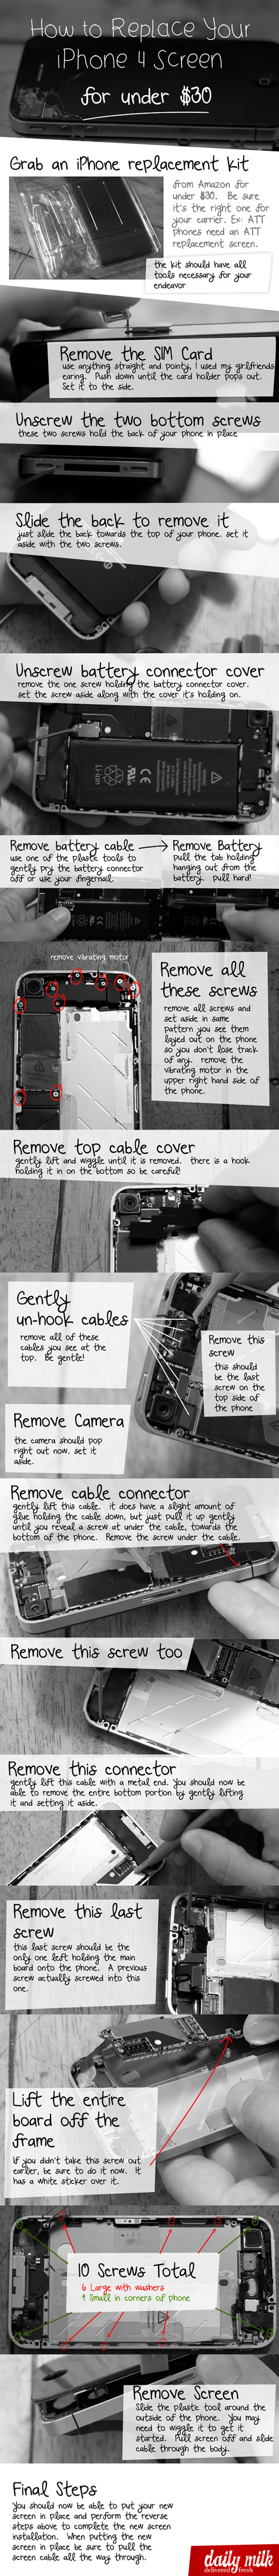 how to replace iphone 4 screen